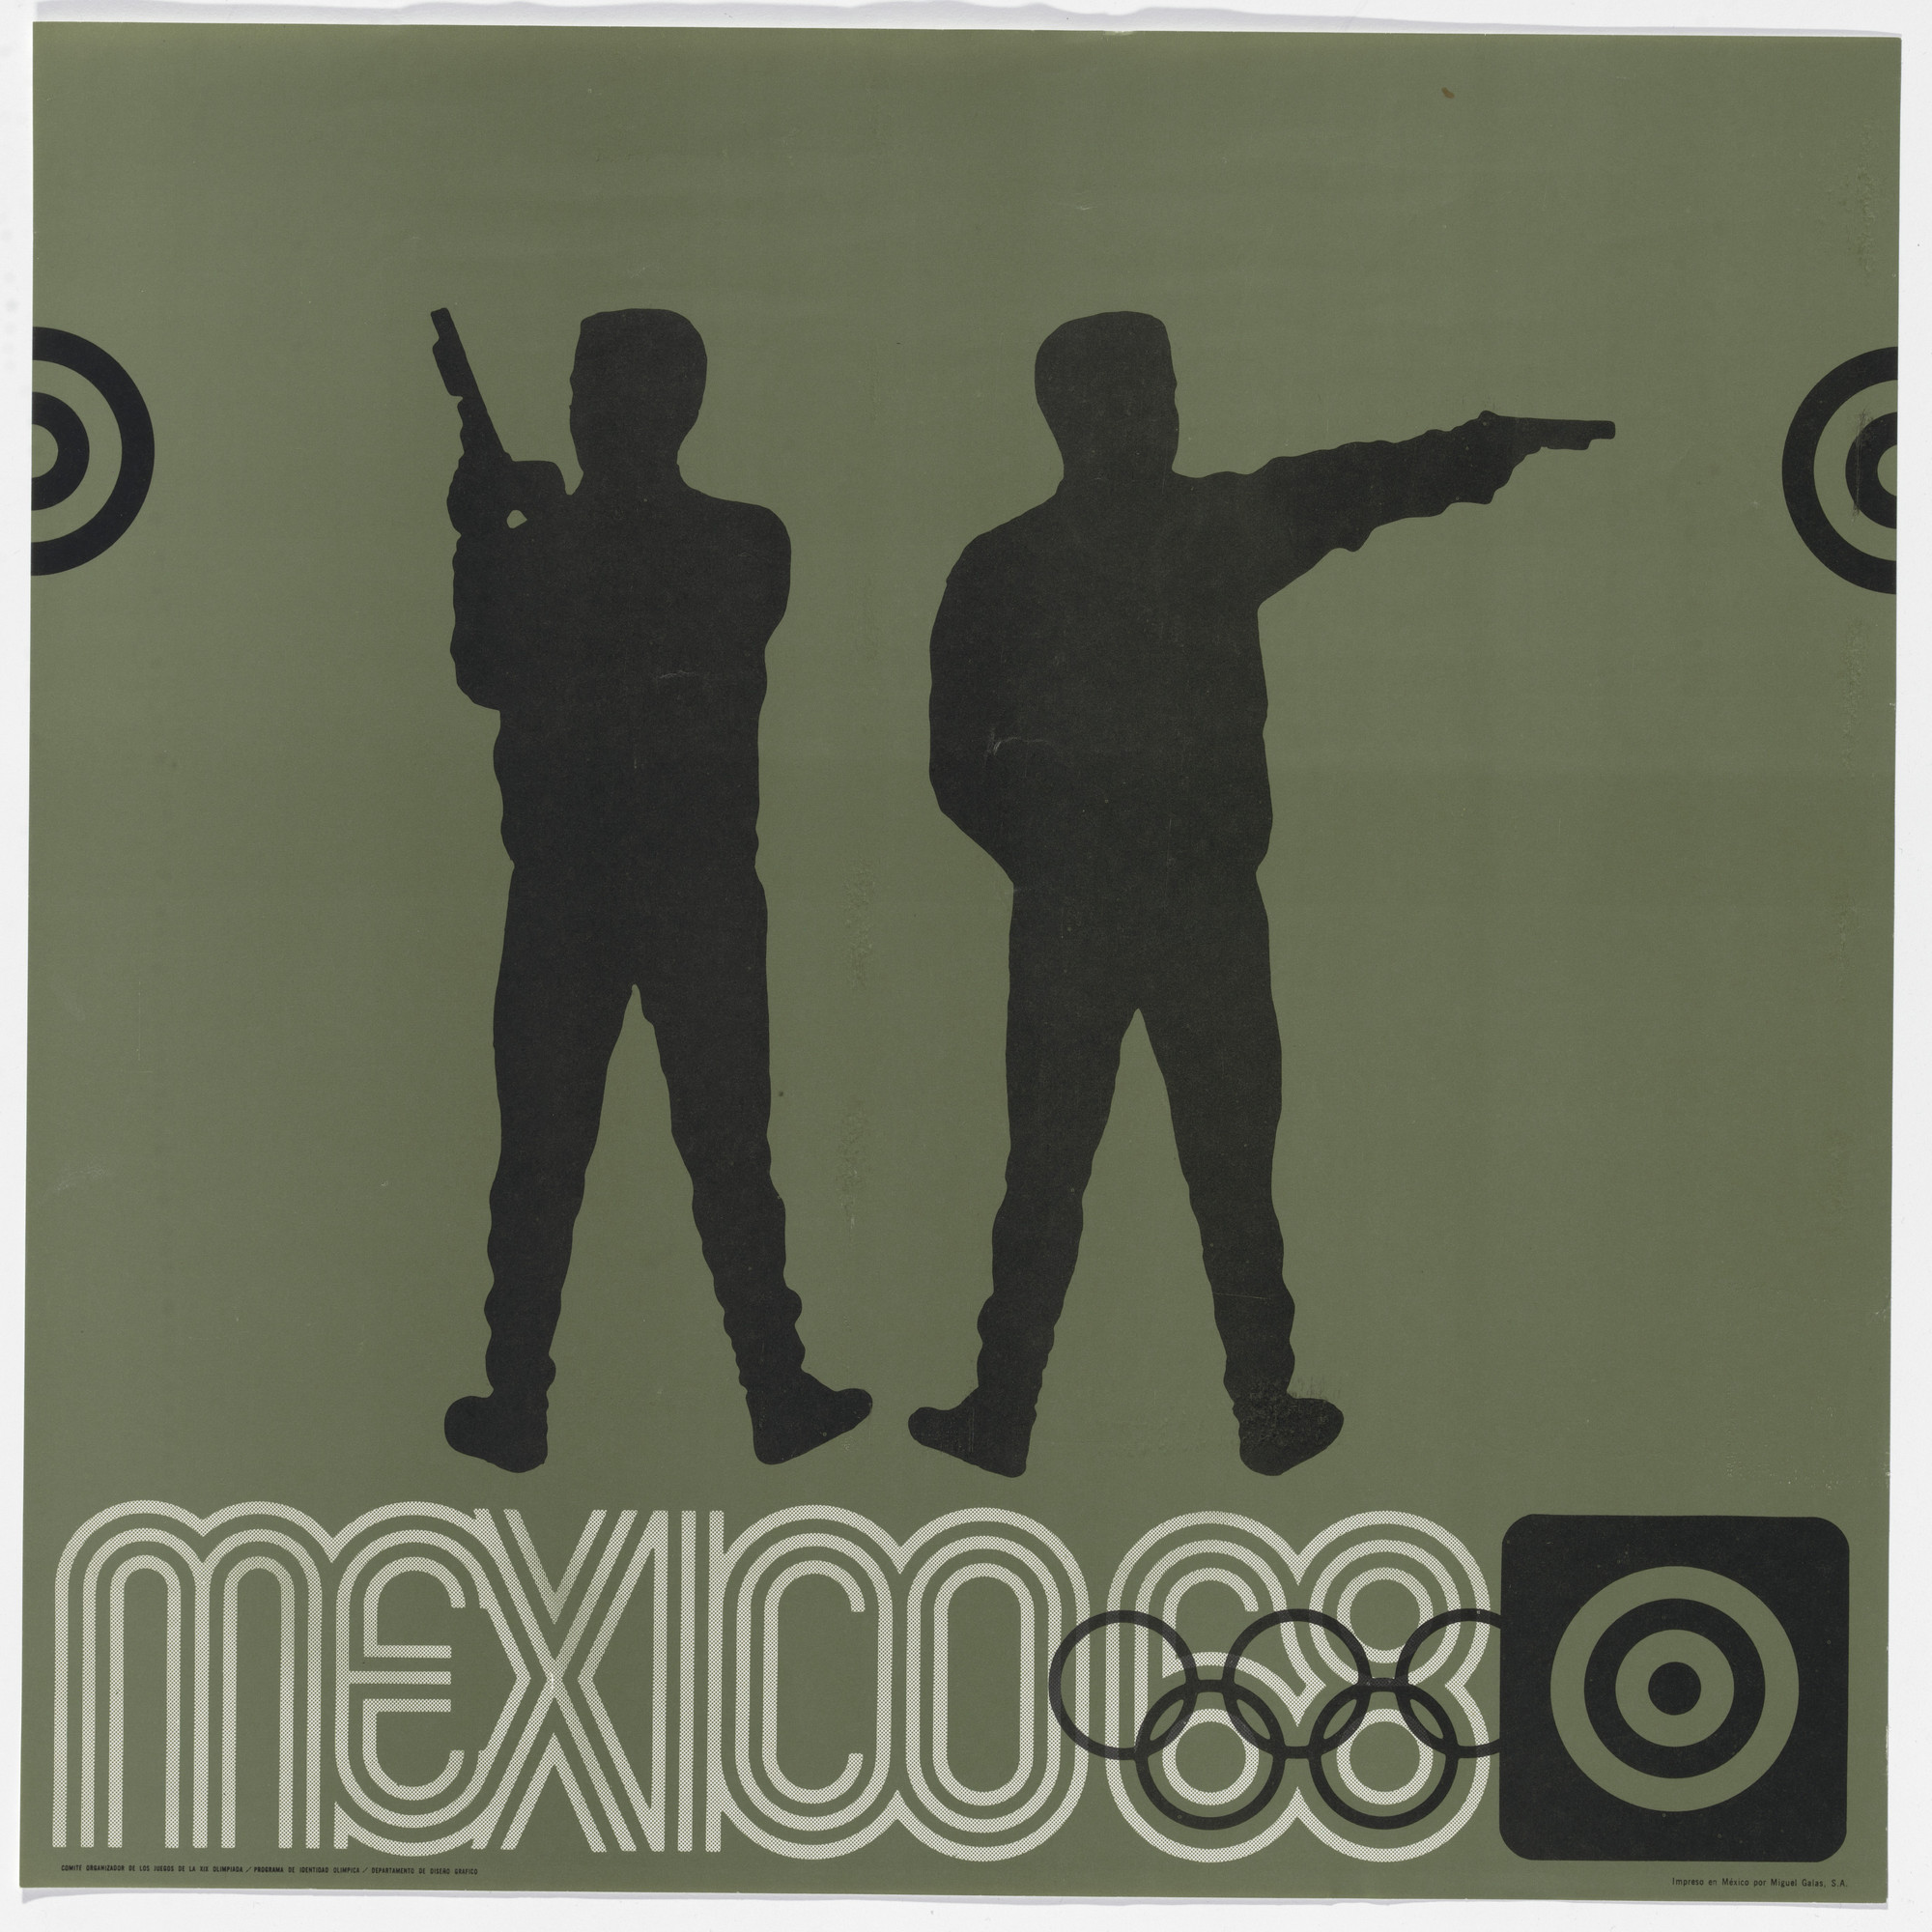 Lance Wyman, Department of Publications and Urban Design, Organizing Committee of the XIX Olympiad. Mexico City 1968 Olympics: Shooting. c. 1968